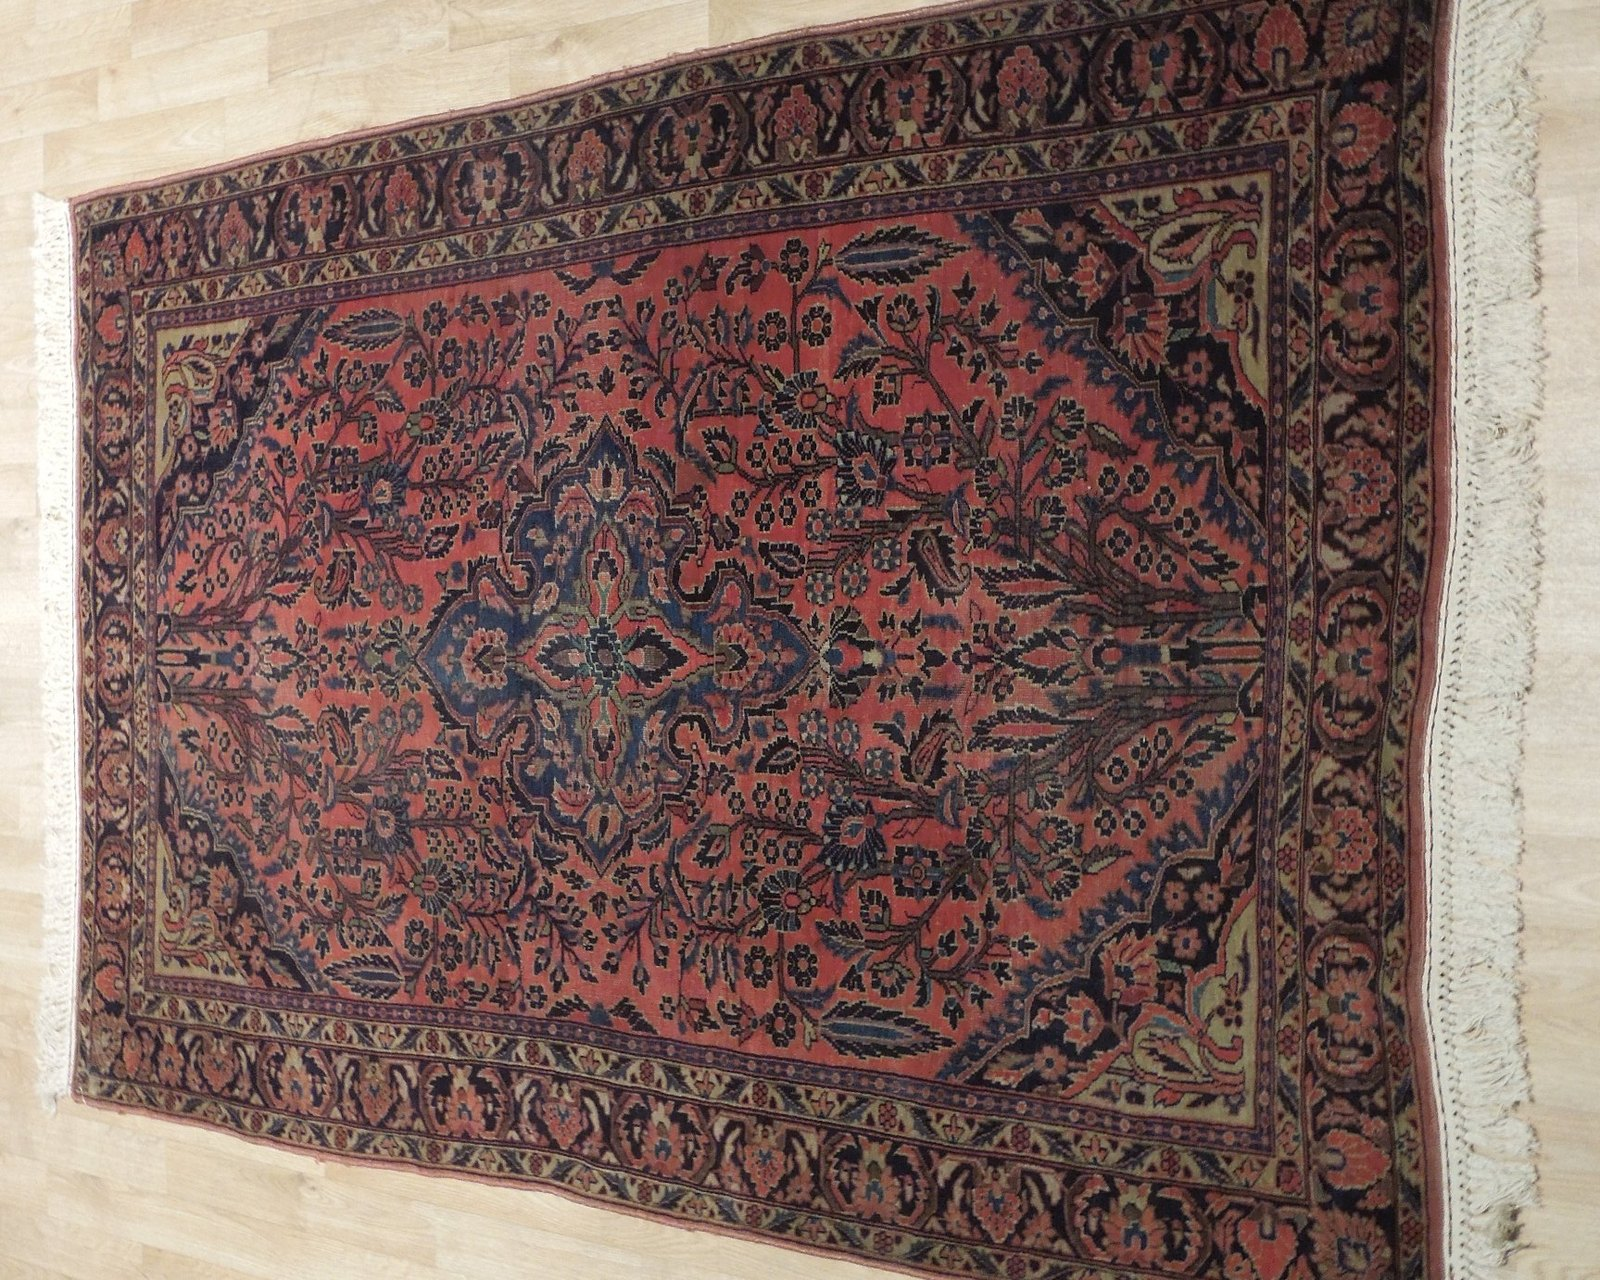 Sarouk Persian Wool Hand-Knotted Rug 5' x 7' Salmon Red Vintage Antique Red Rug image 3